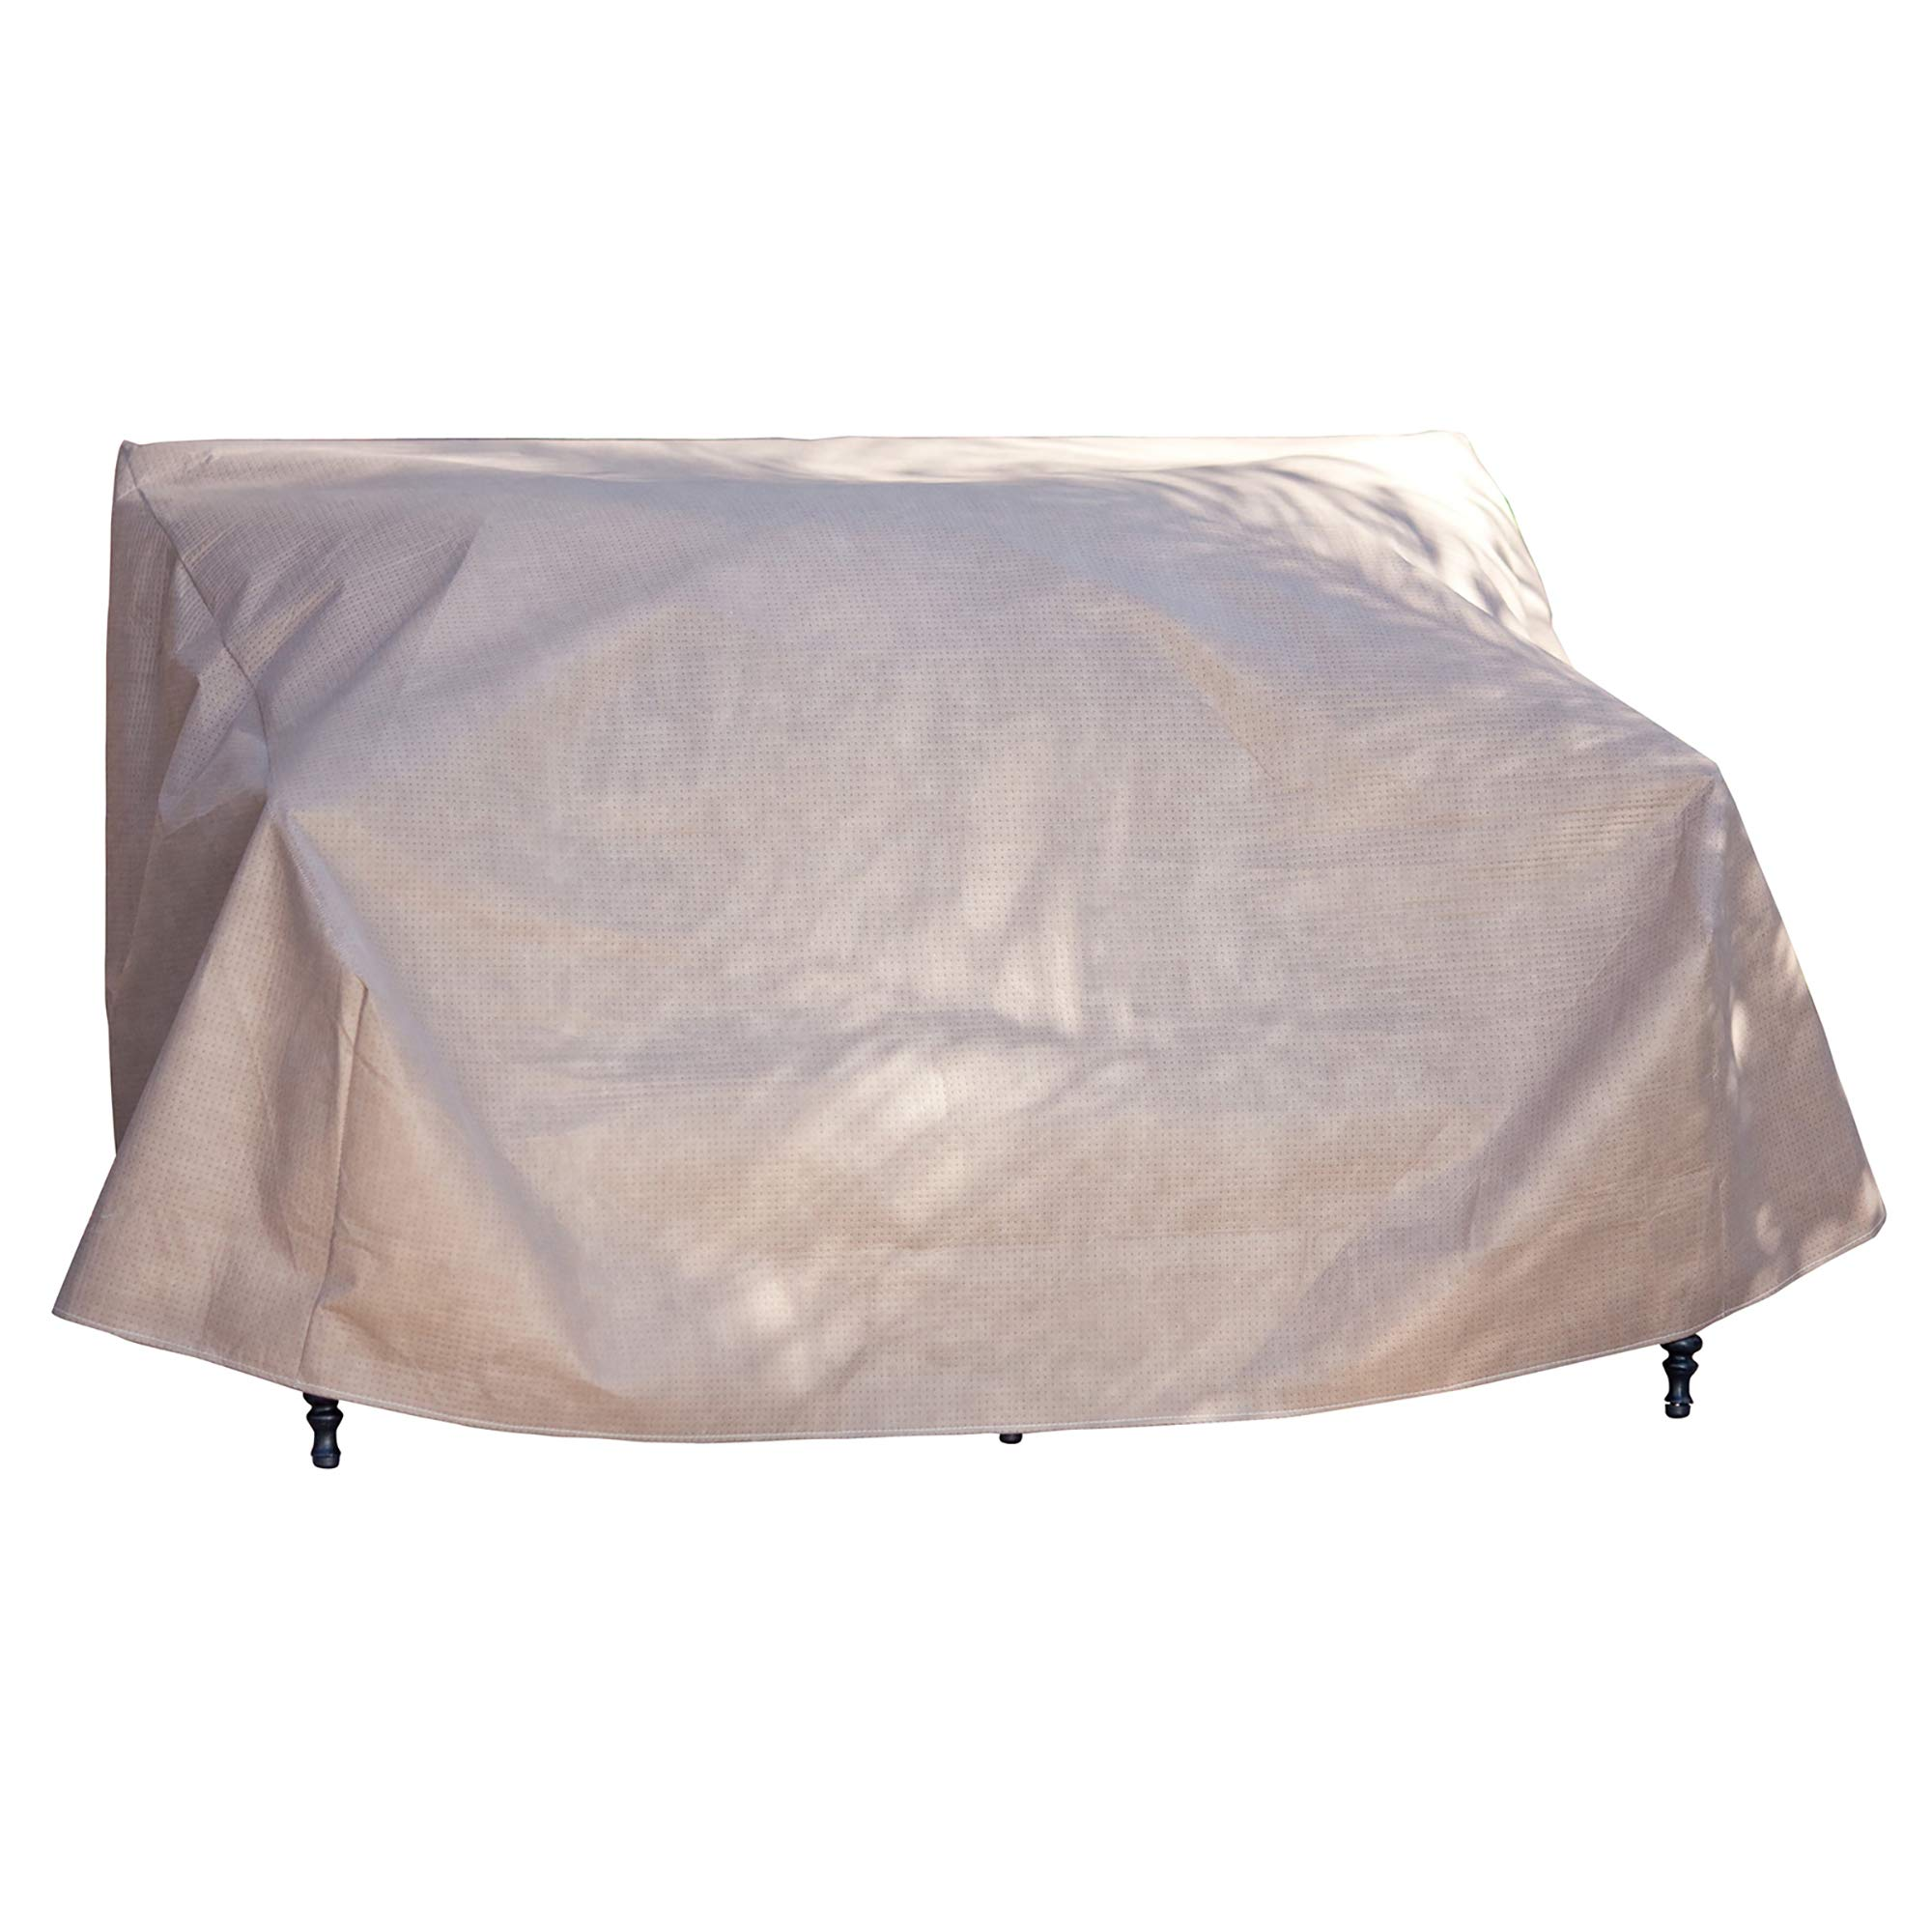 Duck Covers Elite Patio Loveseat Cover with Inflatable Airbag to Prevent Pooling, 54-Inch